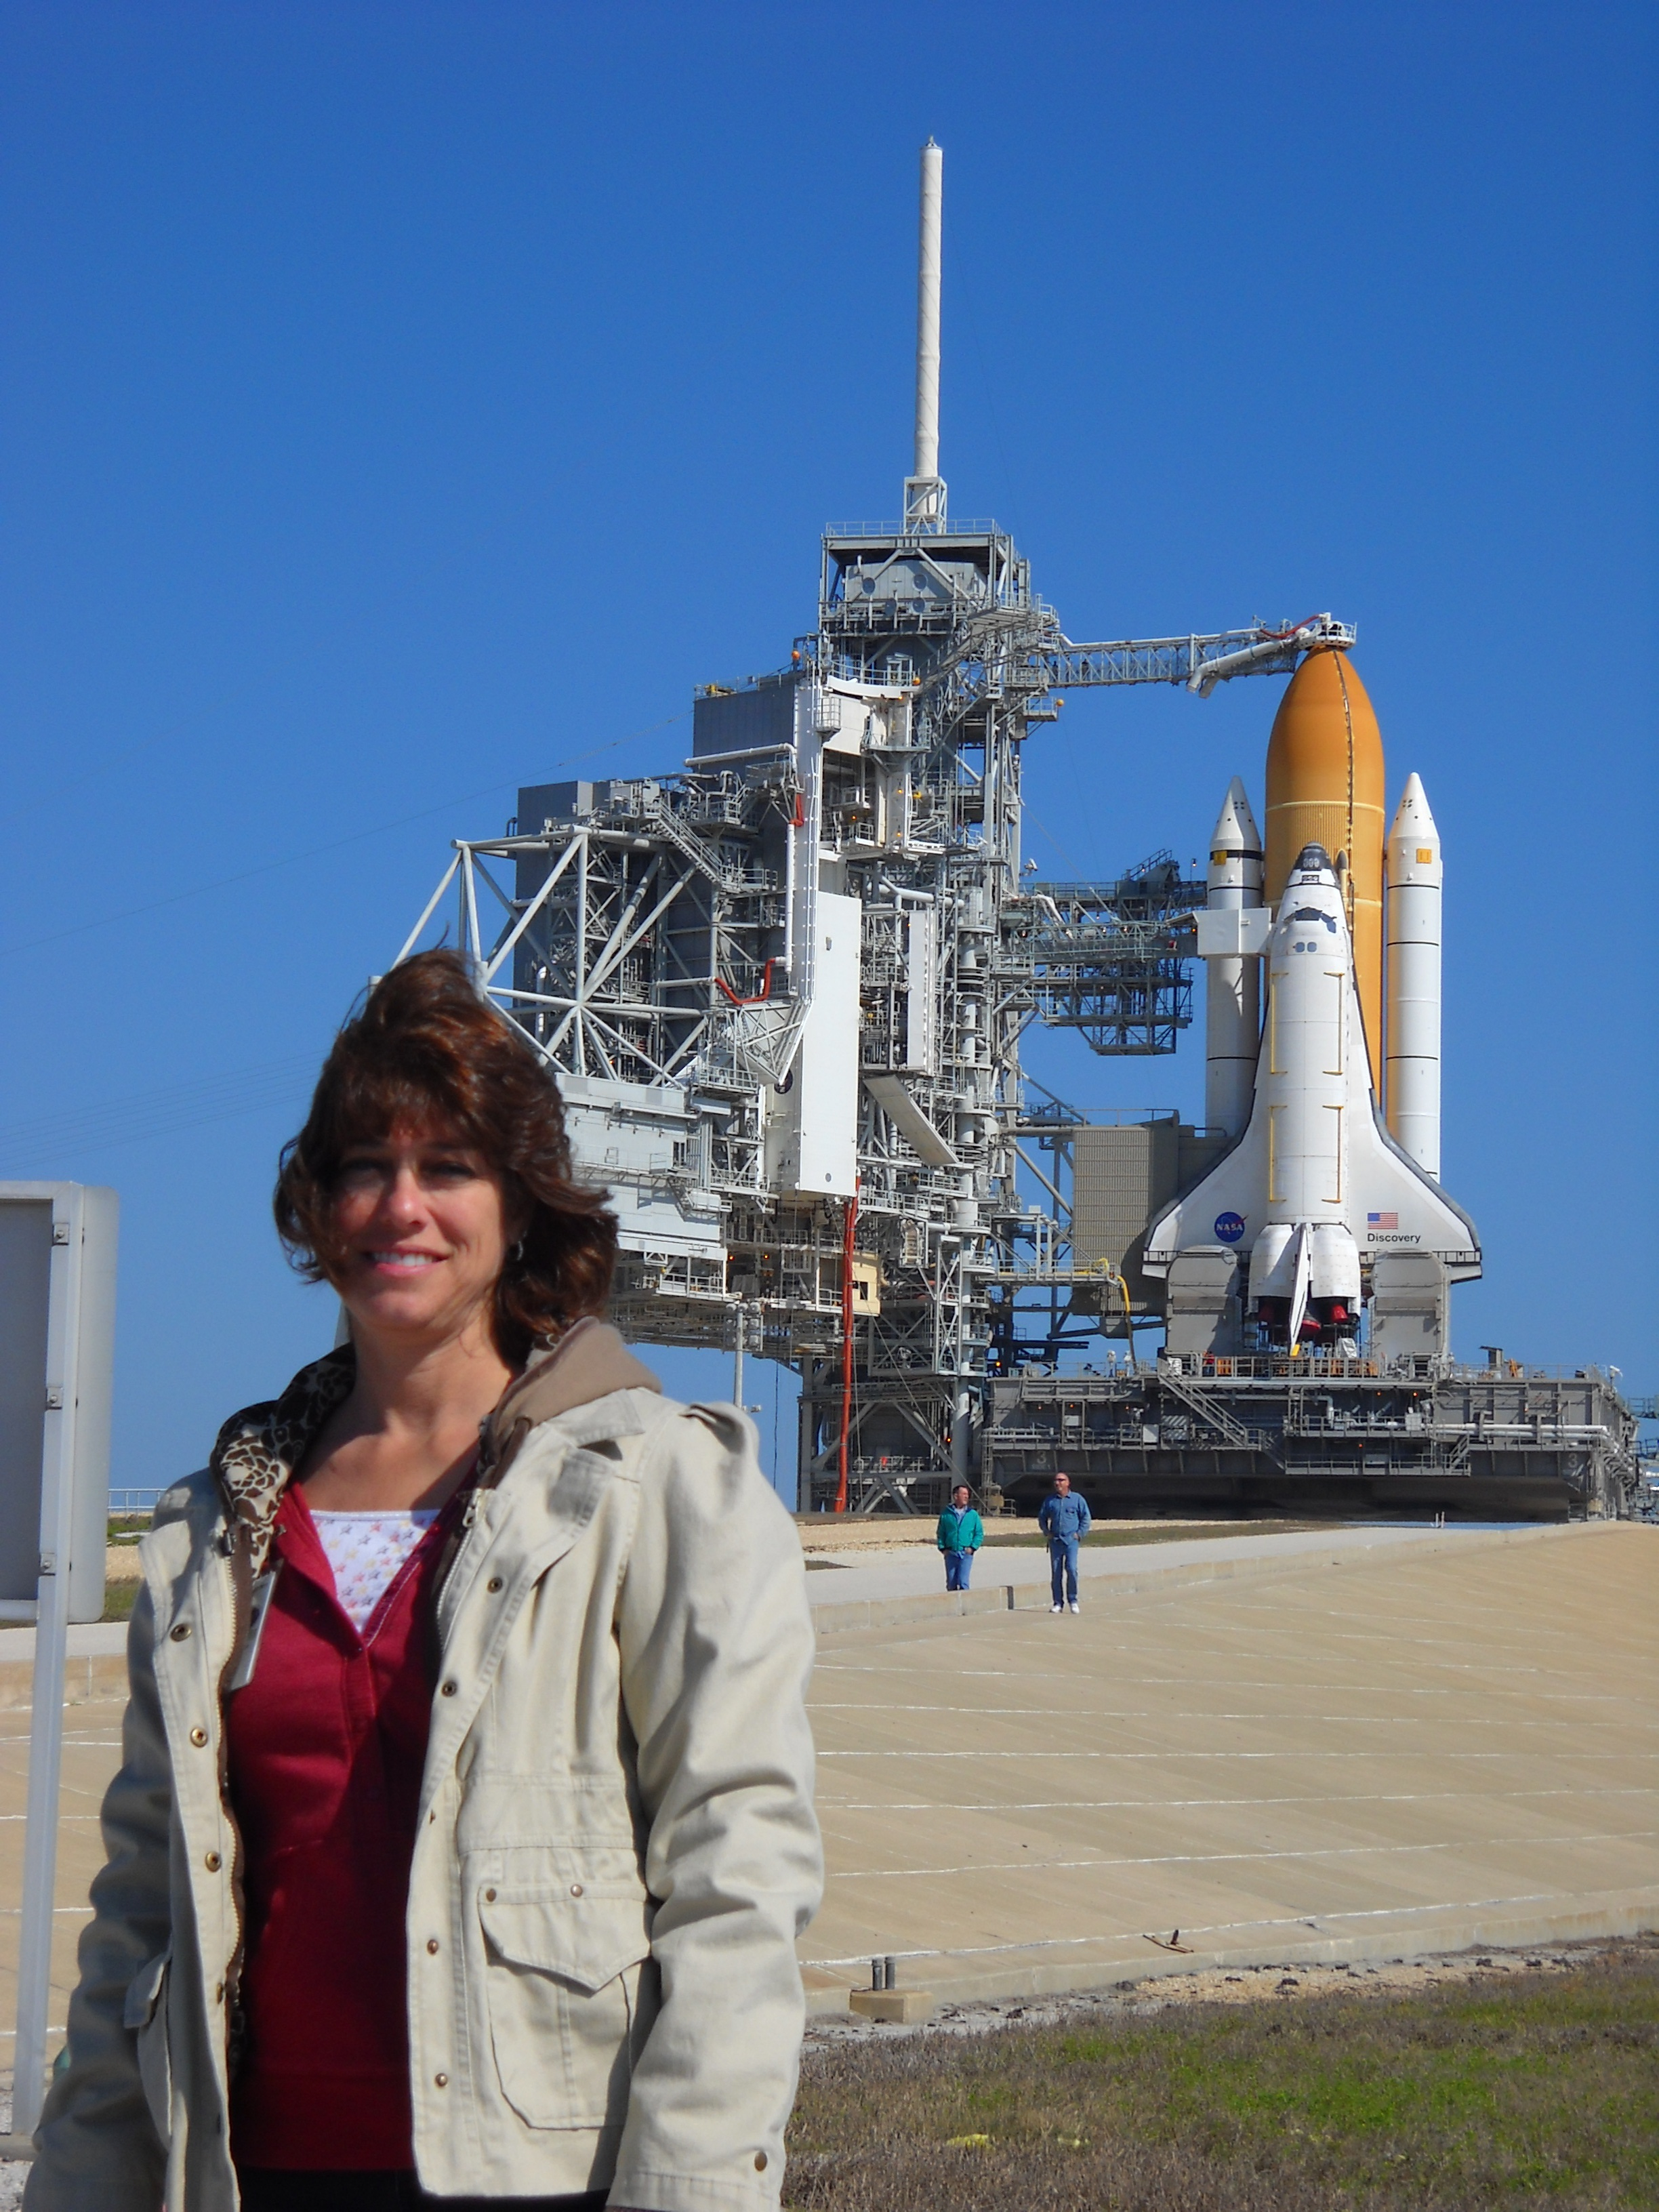 Bonnie K. Stone and the Space Shuttle